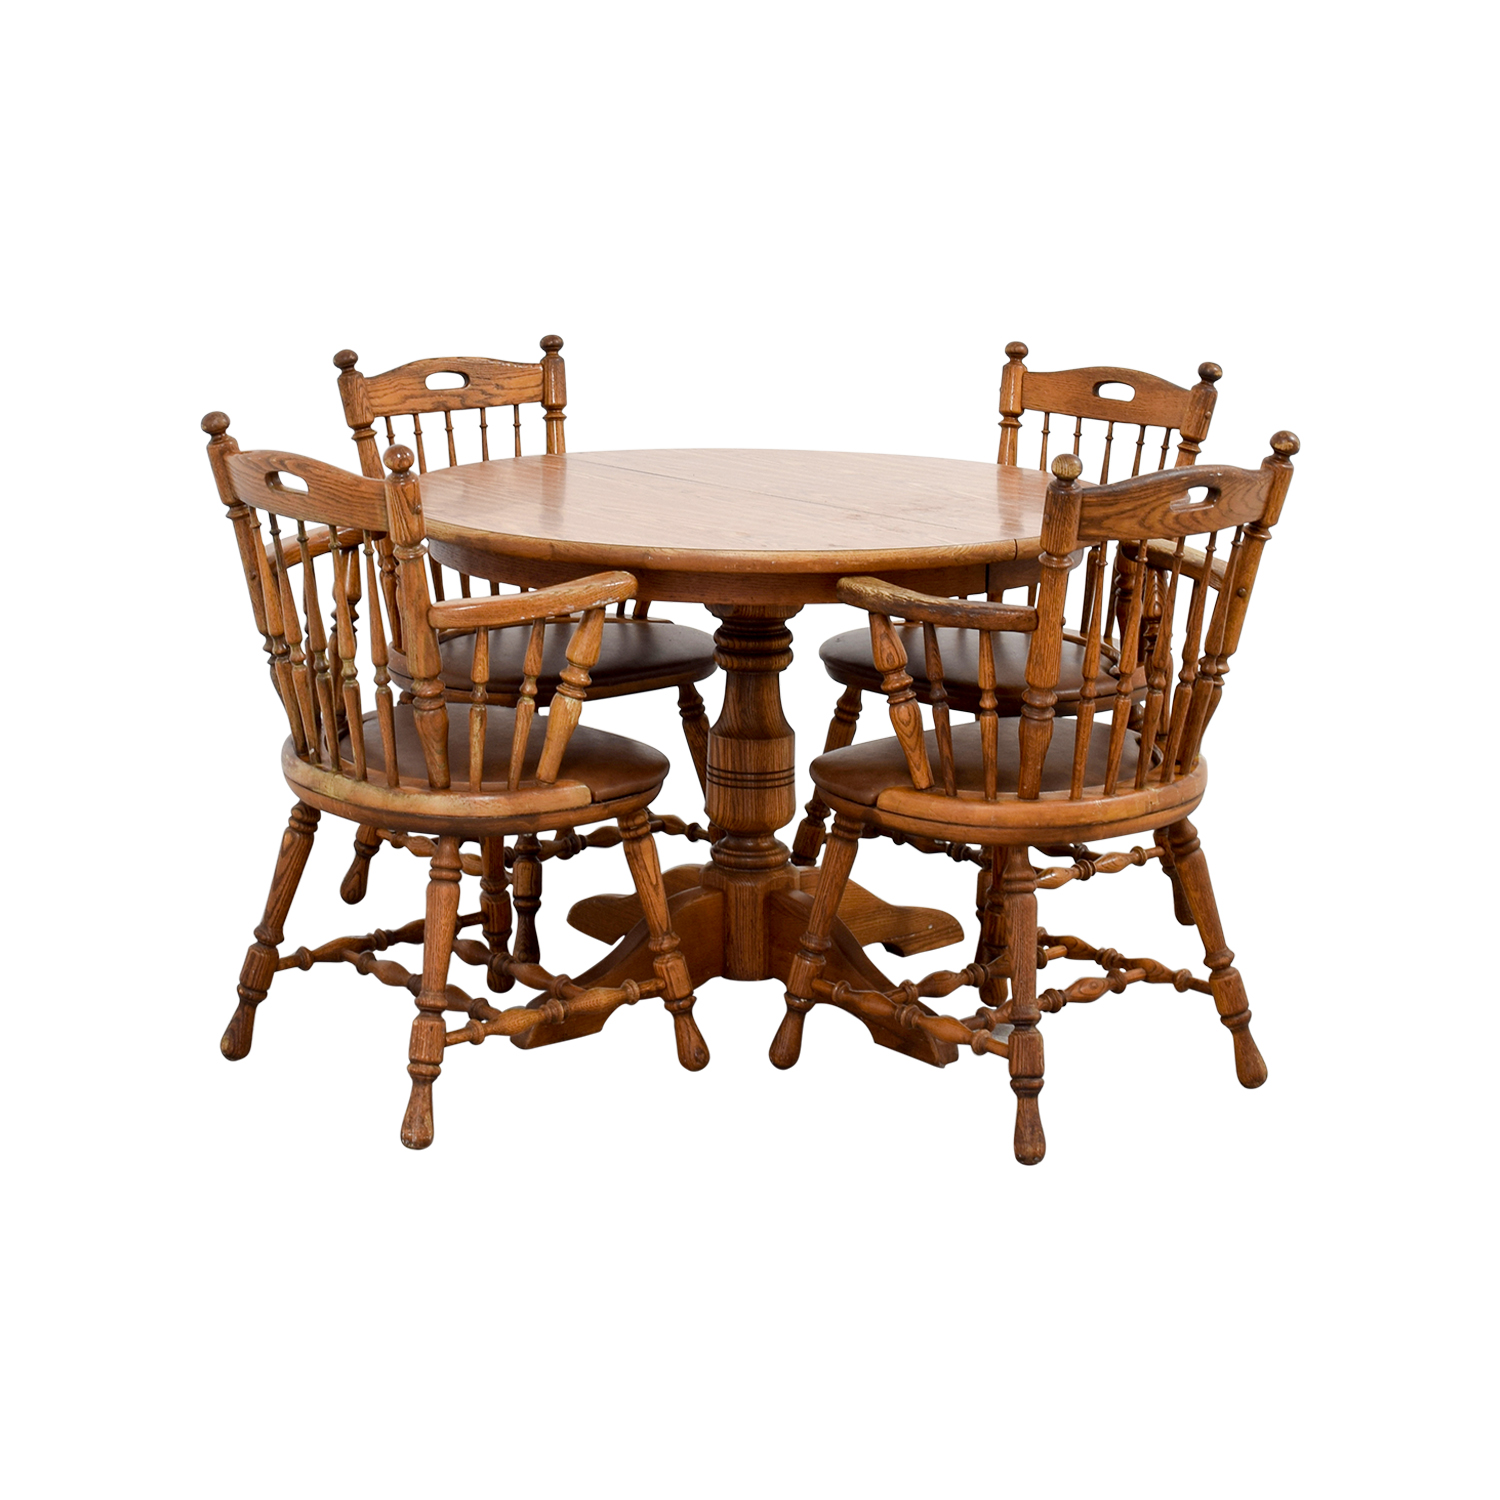 88% OFF - Round Wood Dining Table with Armchairs / Tables